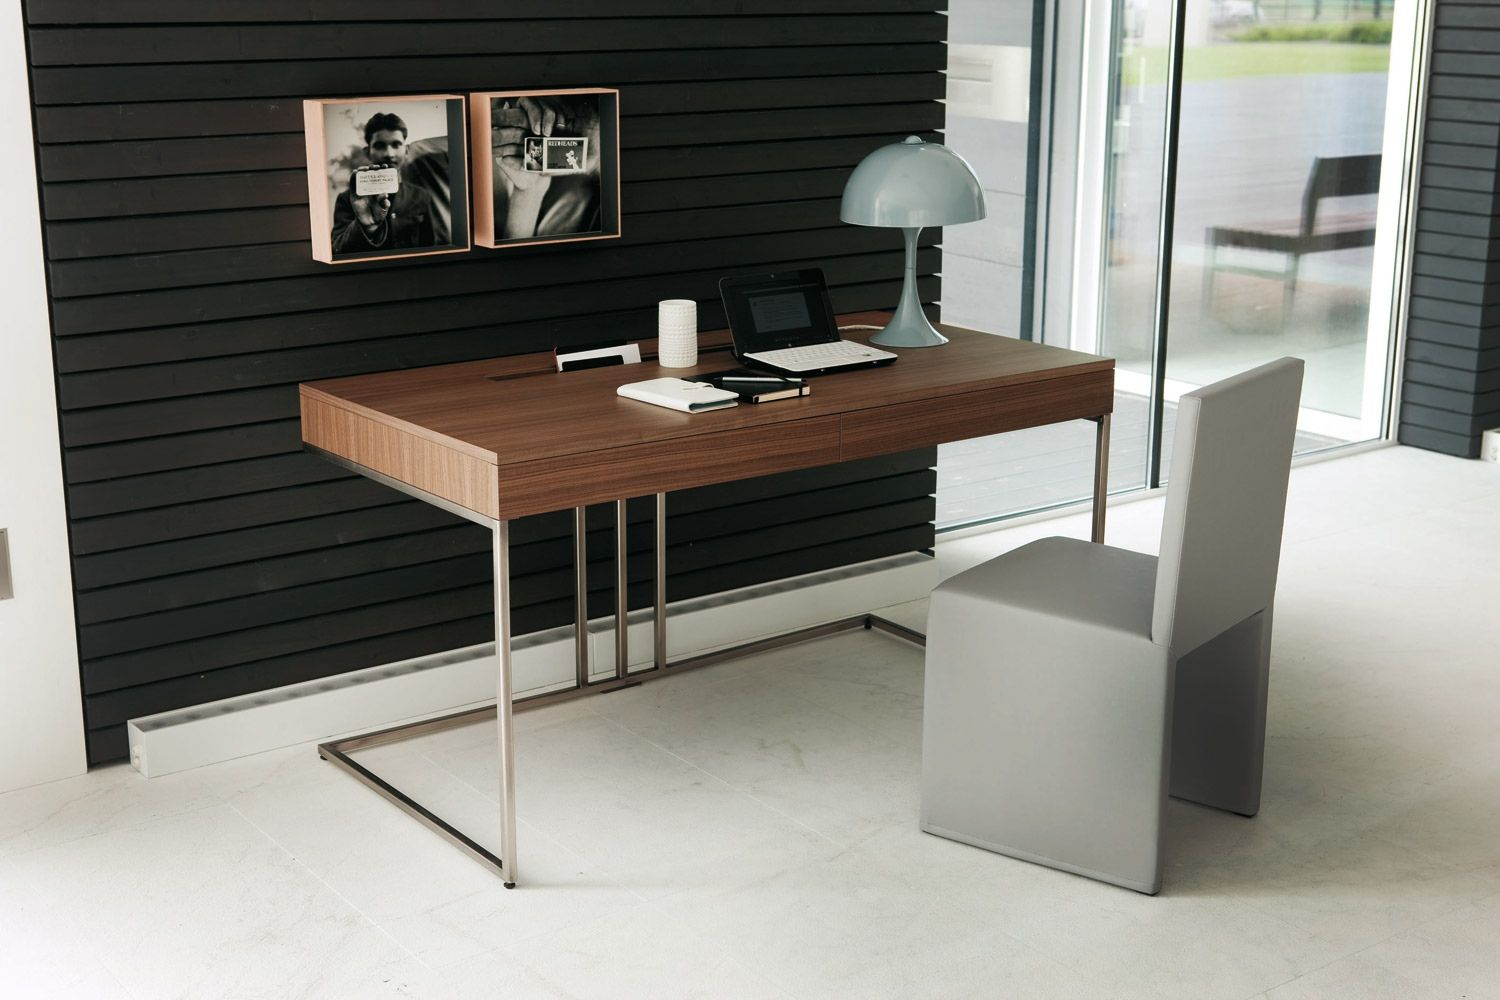 work desks home. inspirational workspace design makes your bedroom looks trendy and awesome working tablescontemporary deskcontemporary home work desks